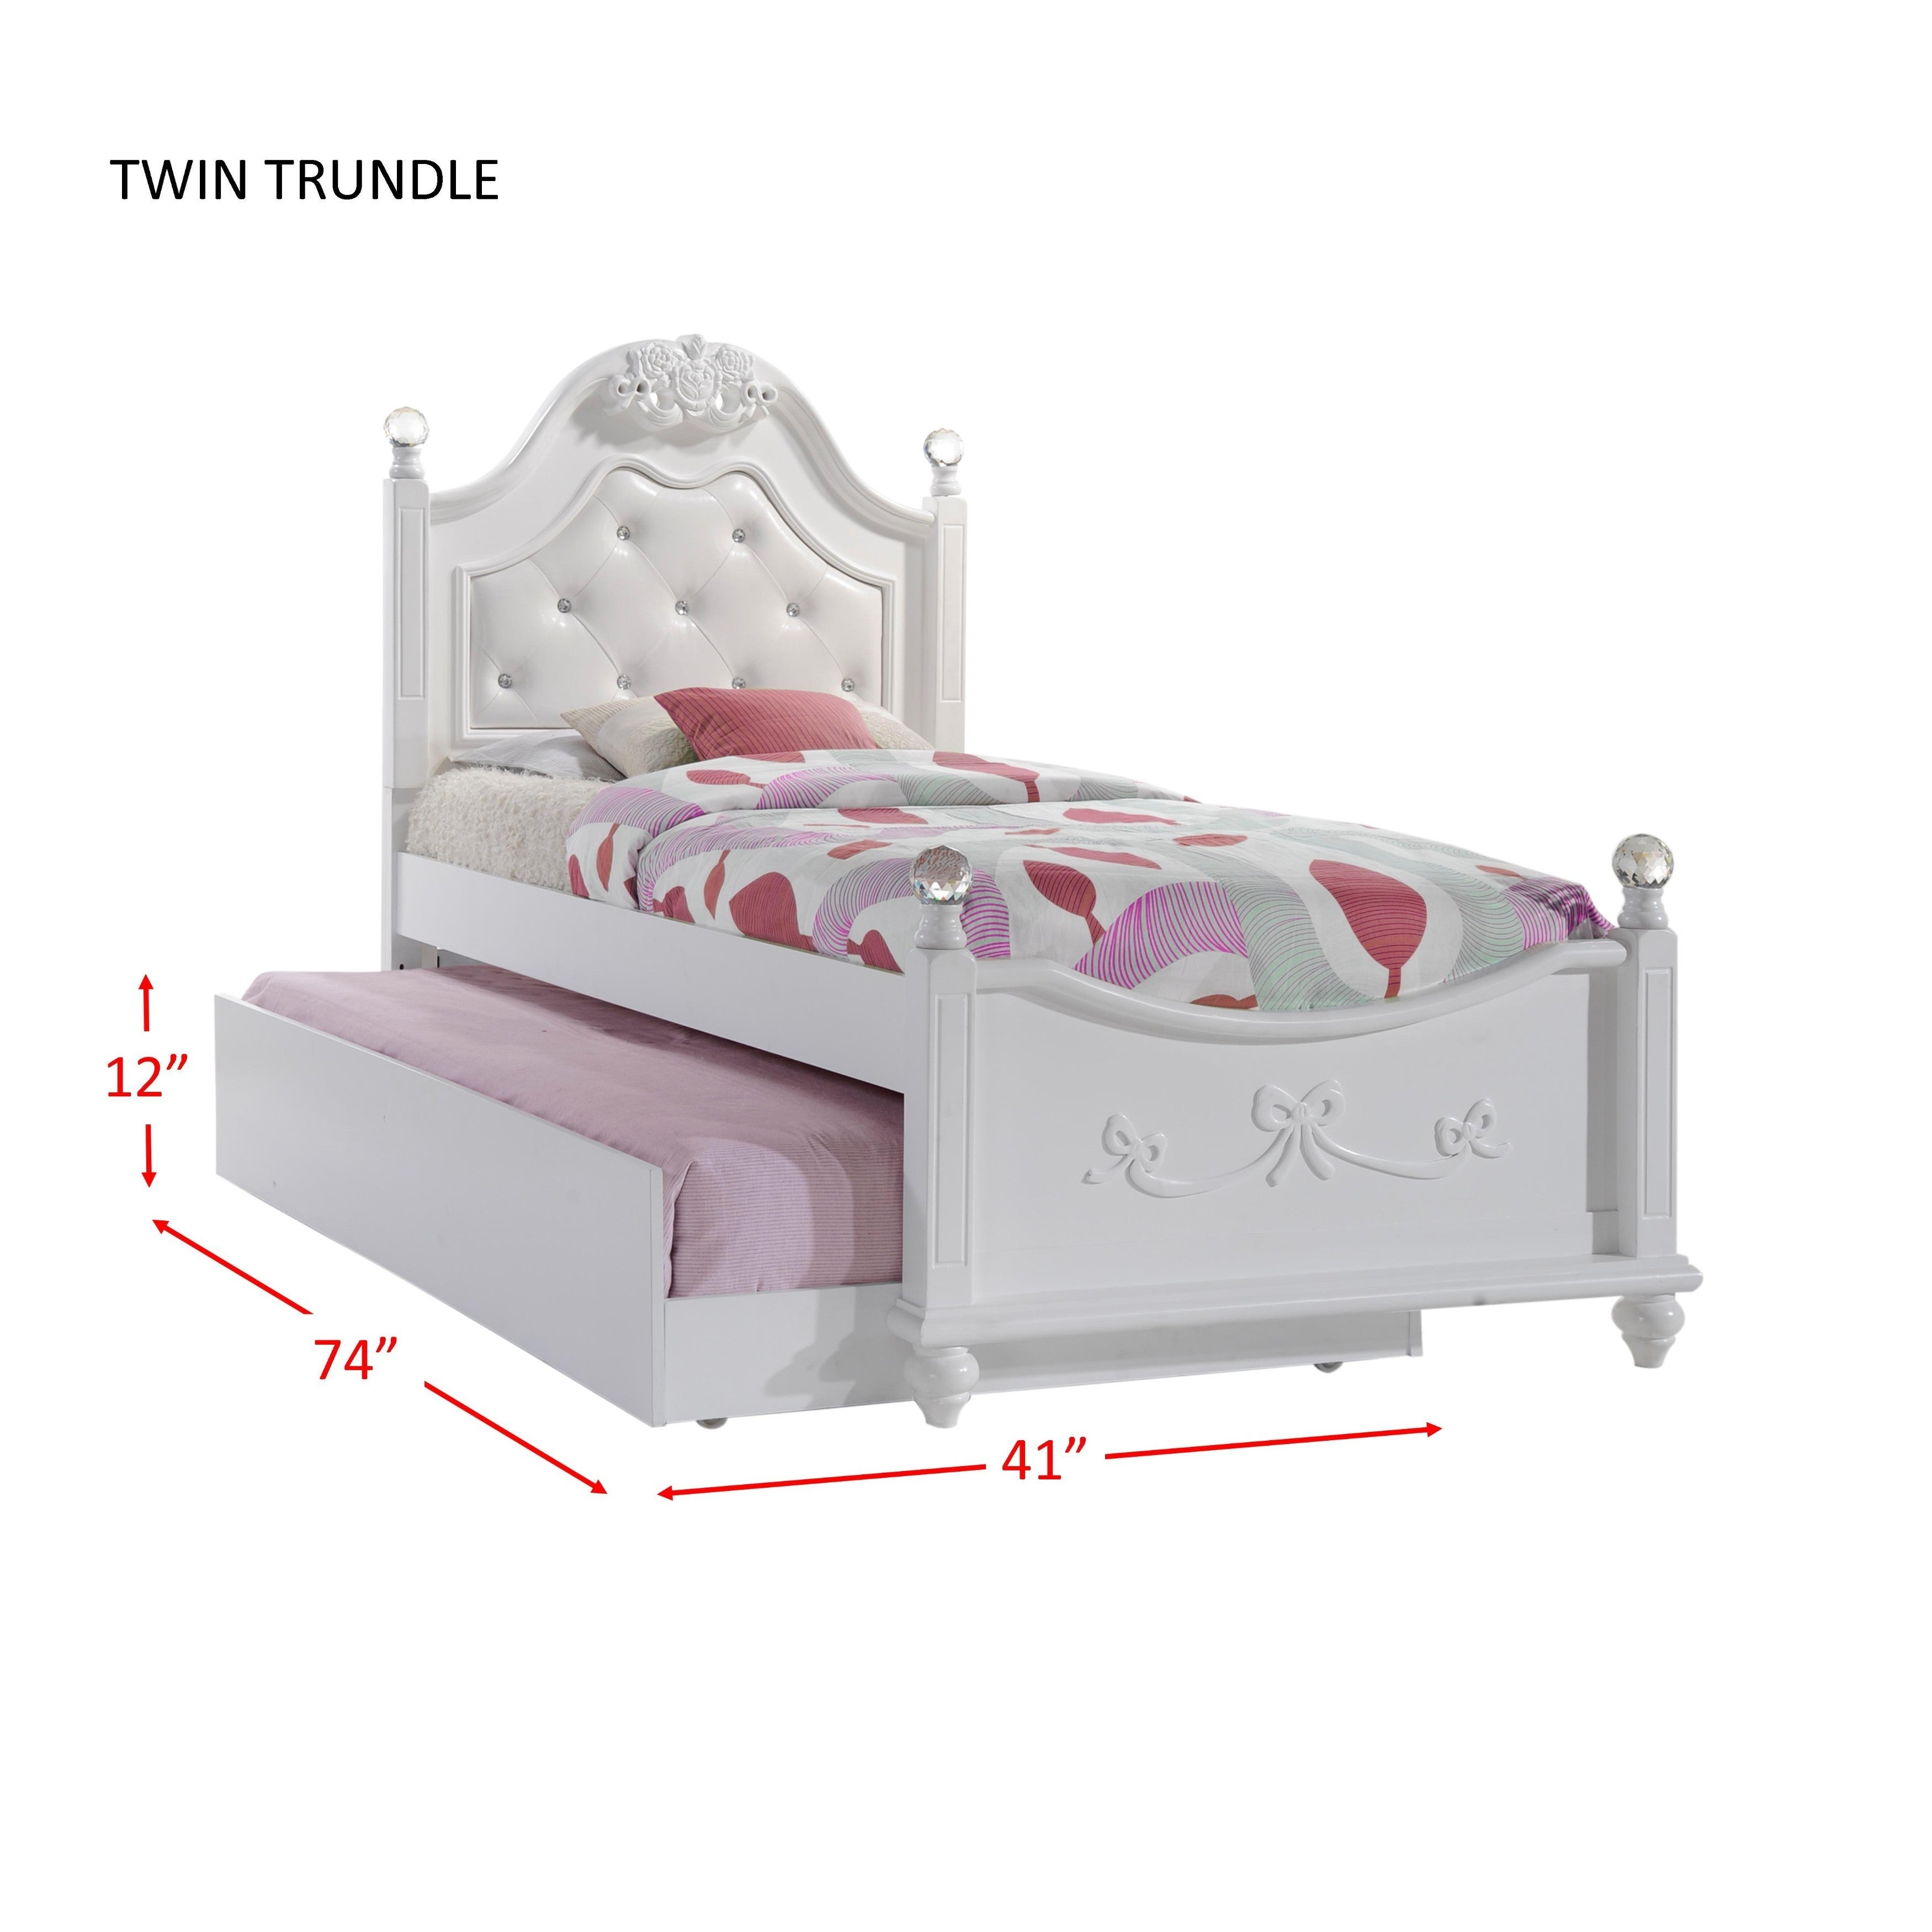 base la drawers queen storage platform mattress twin and salle frame bed kids underneath s with lowest cheap canada girls full black trundle size captain headboard frames